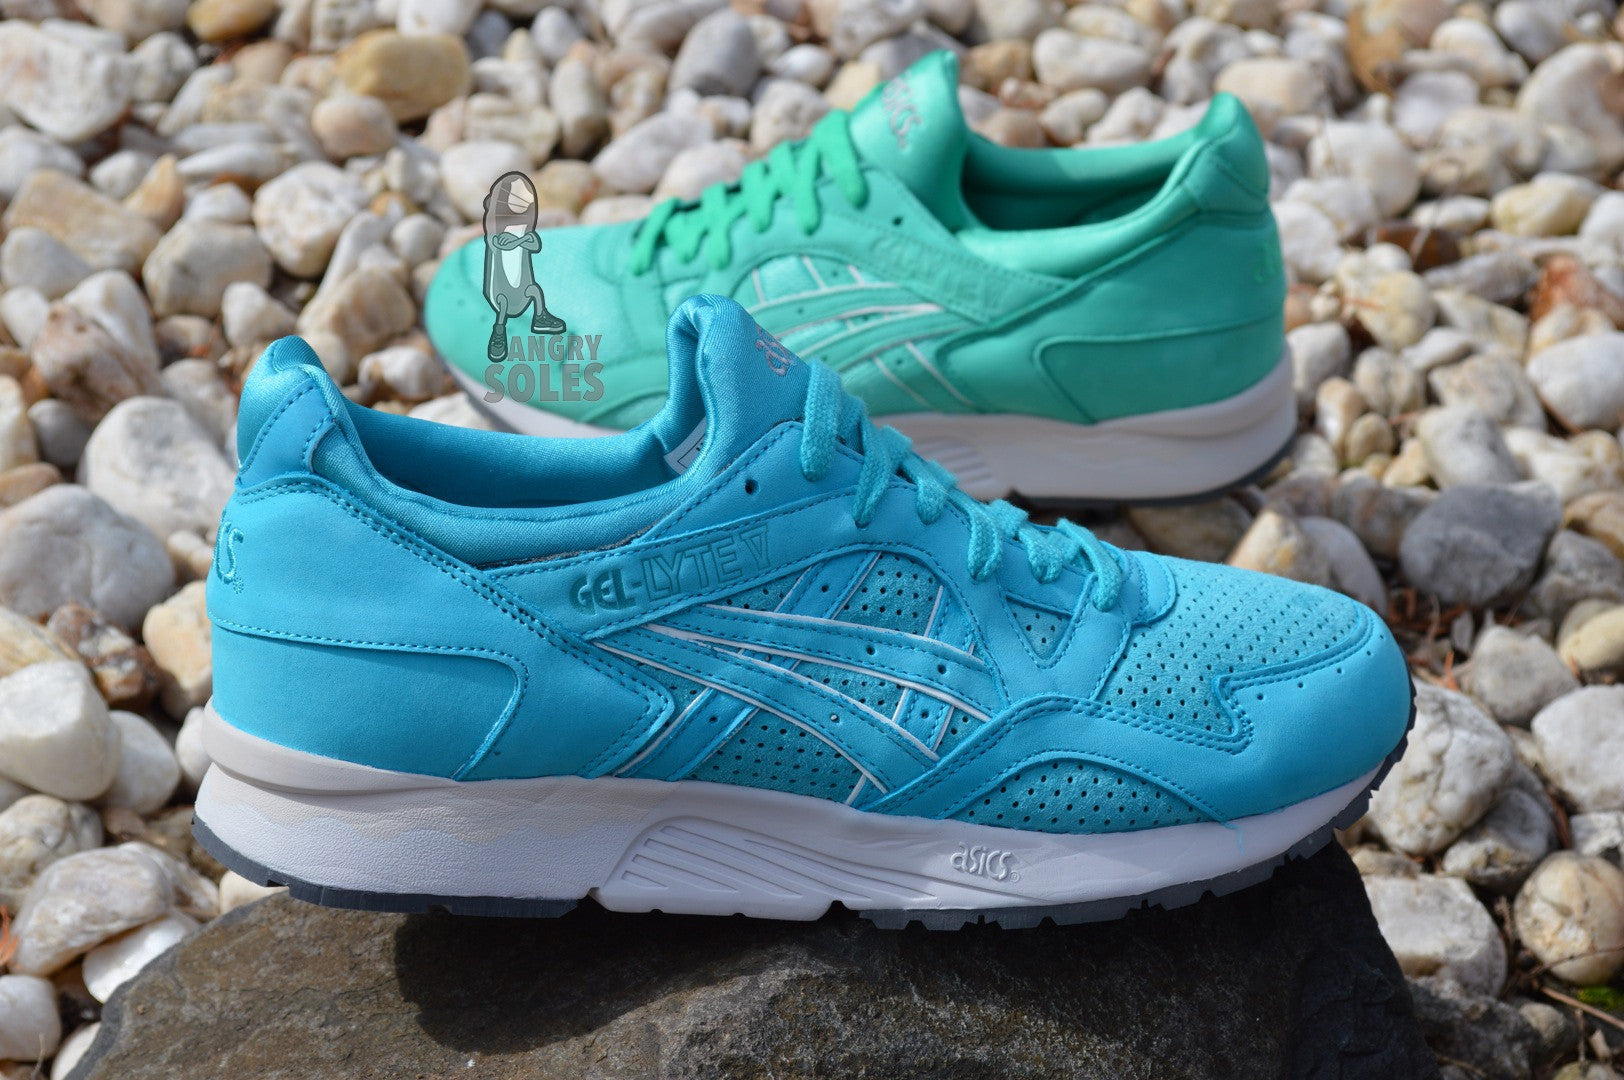 Asics Volleyball Shoes Online Shopping In India